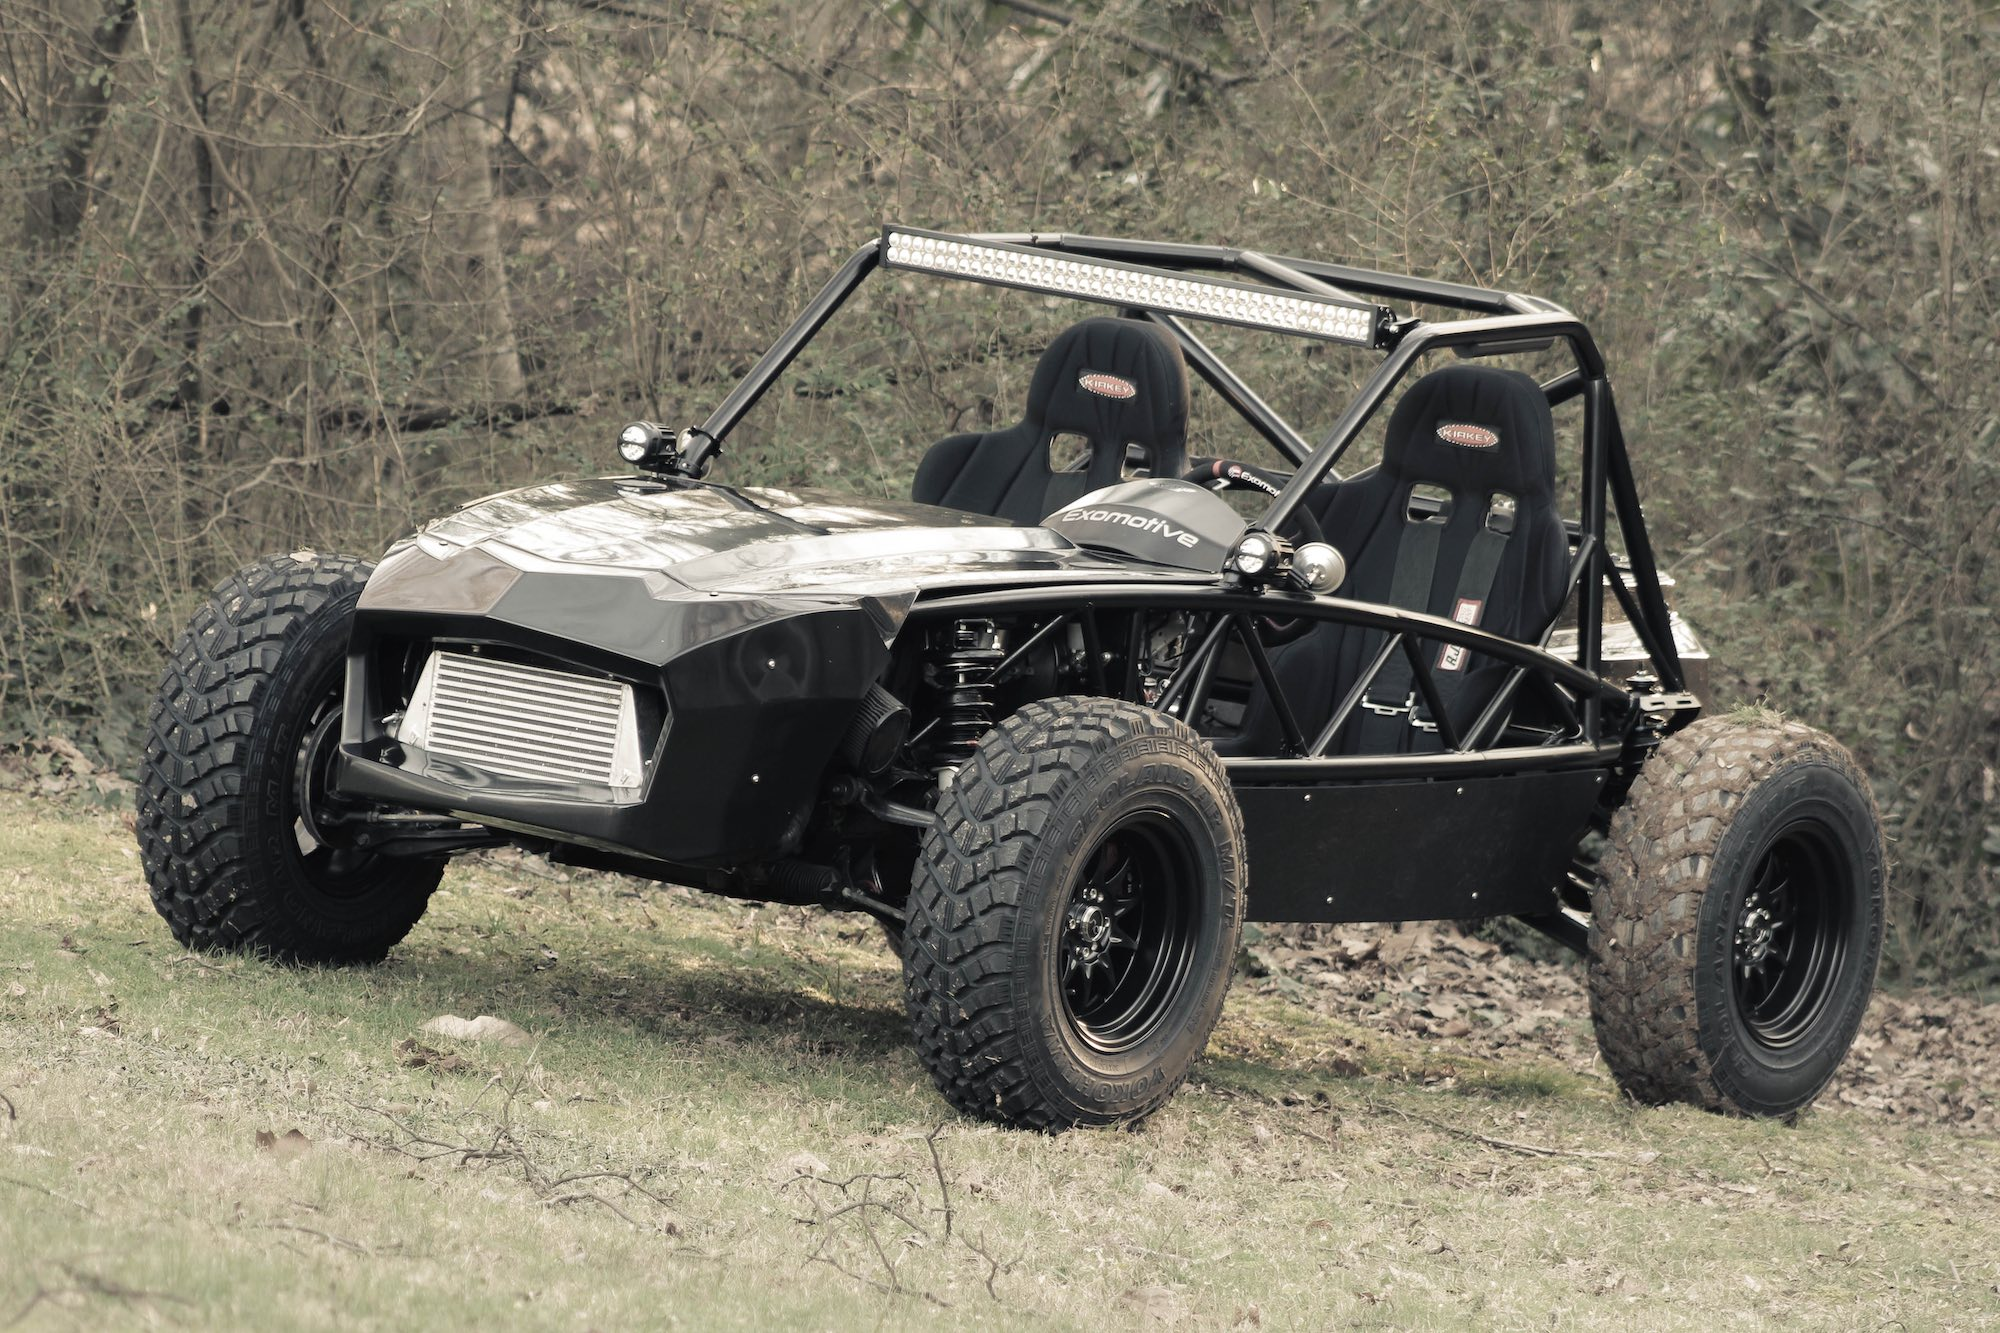 Exocet Off-Road Is a Mazda Miata-Based Go-Anywhere Ariel ...